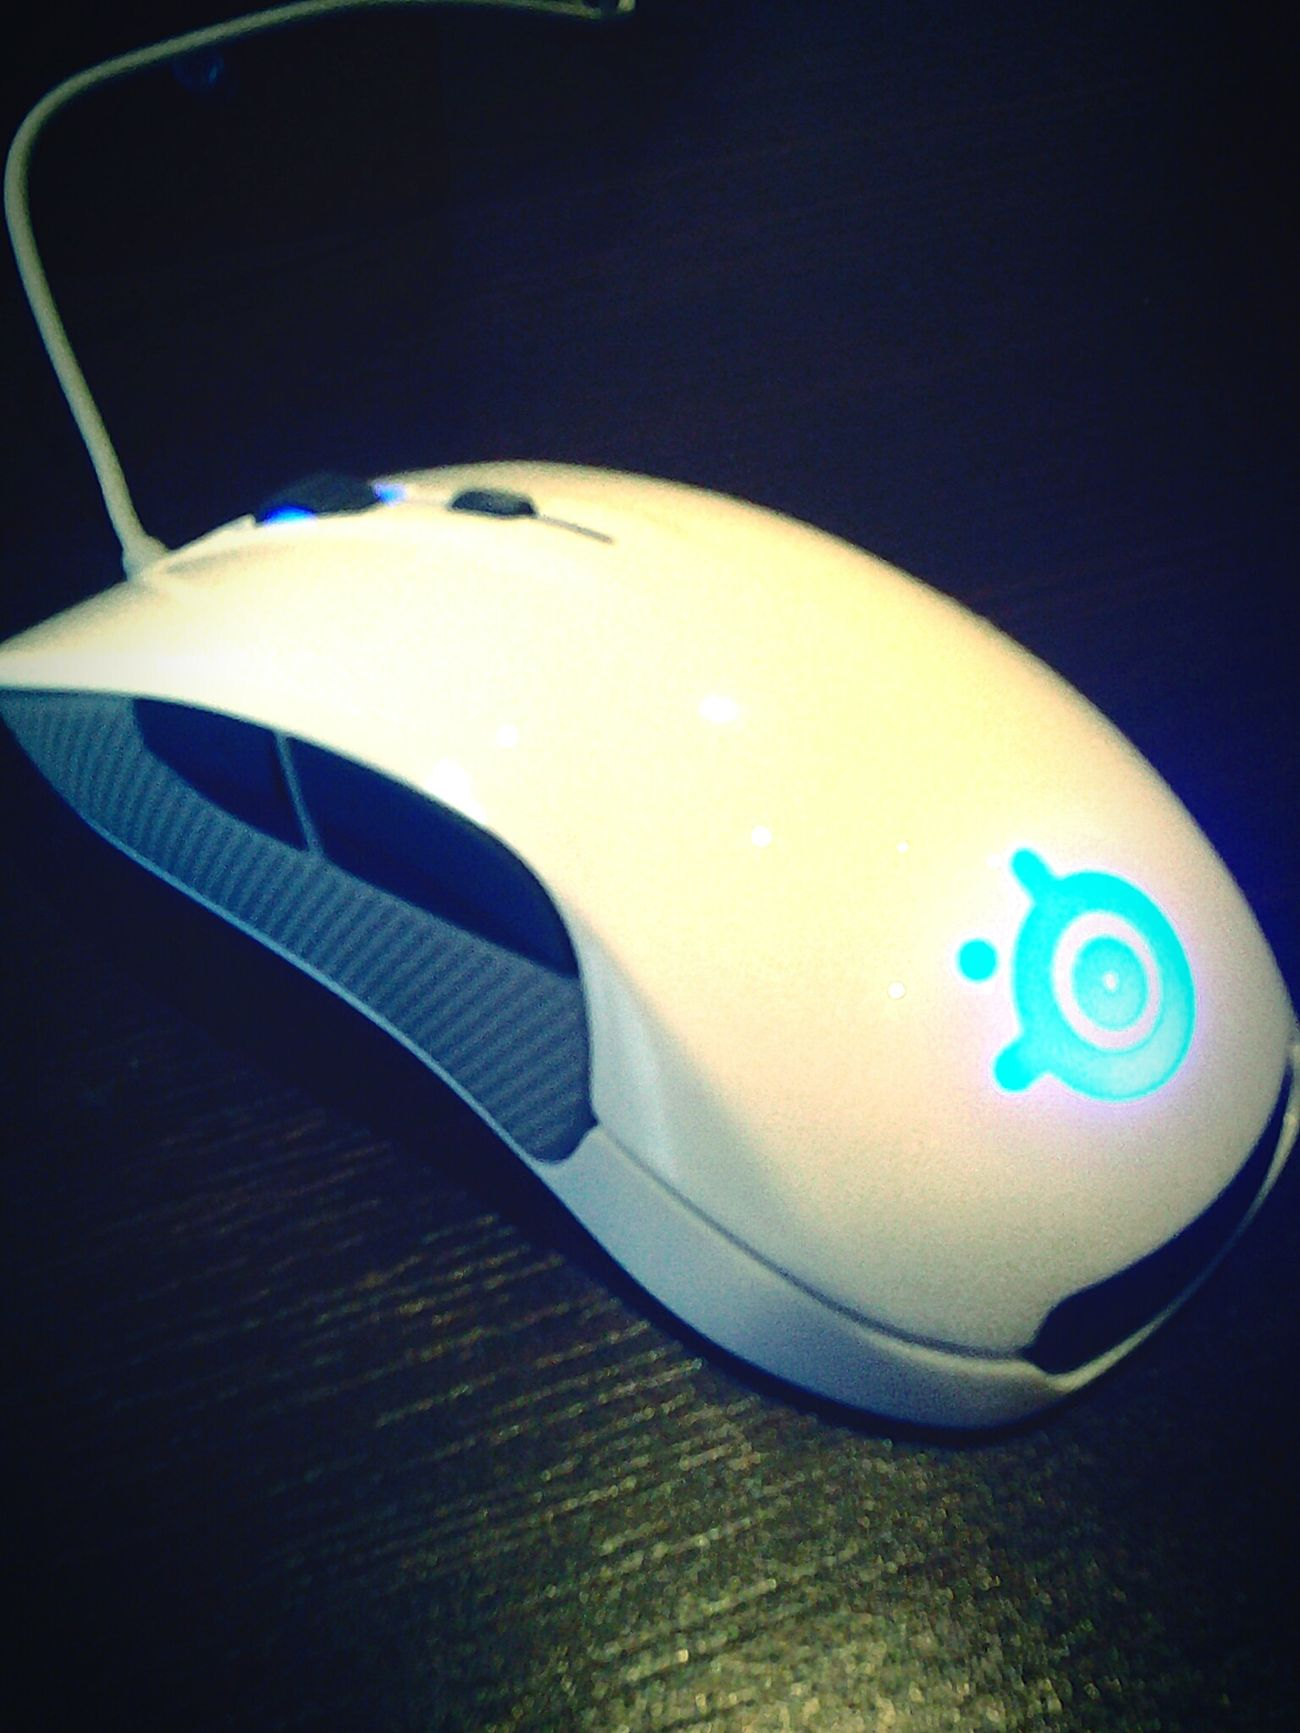 SteelseriesRival Steelseries Rival